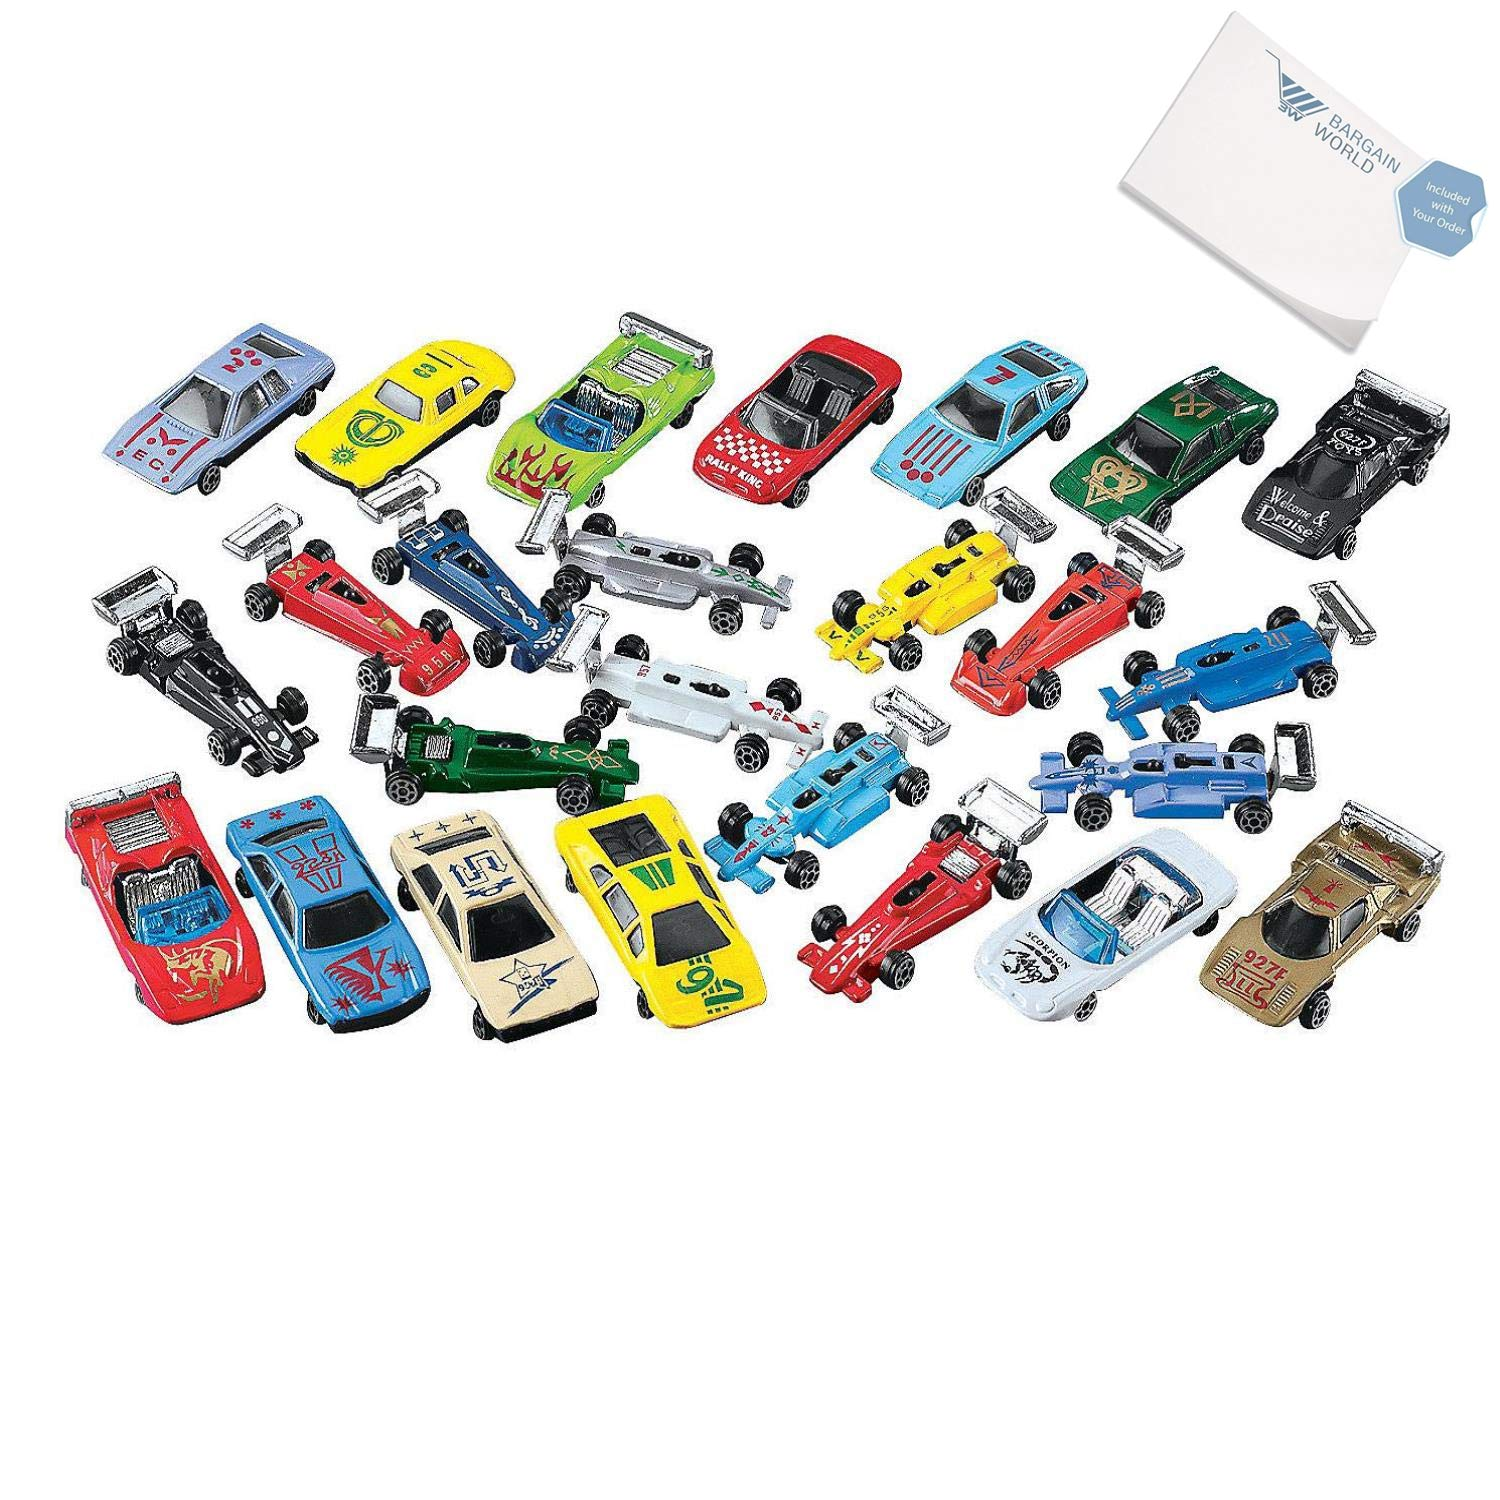 Amazon com: Bargain World Die Cast Car Assortment (With Sticky Notes